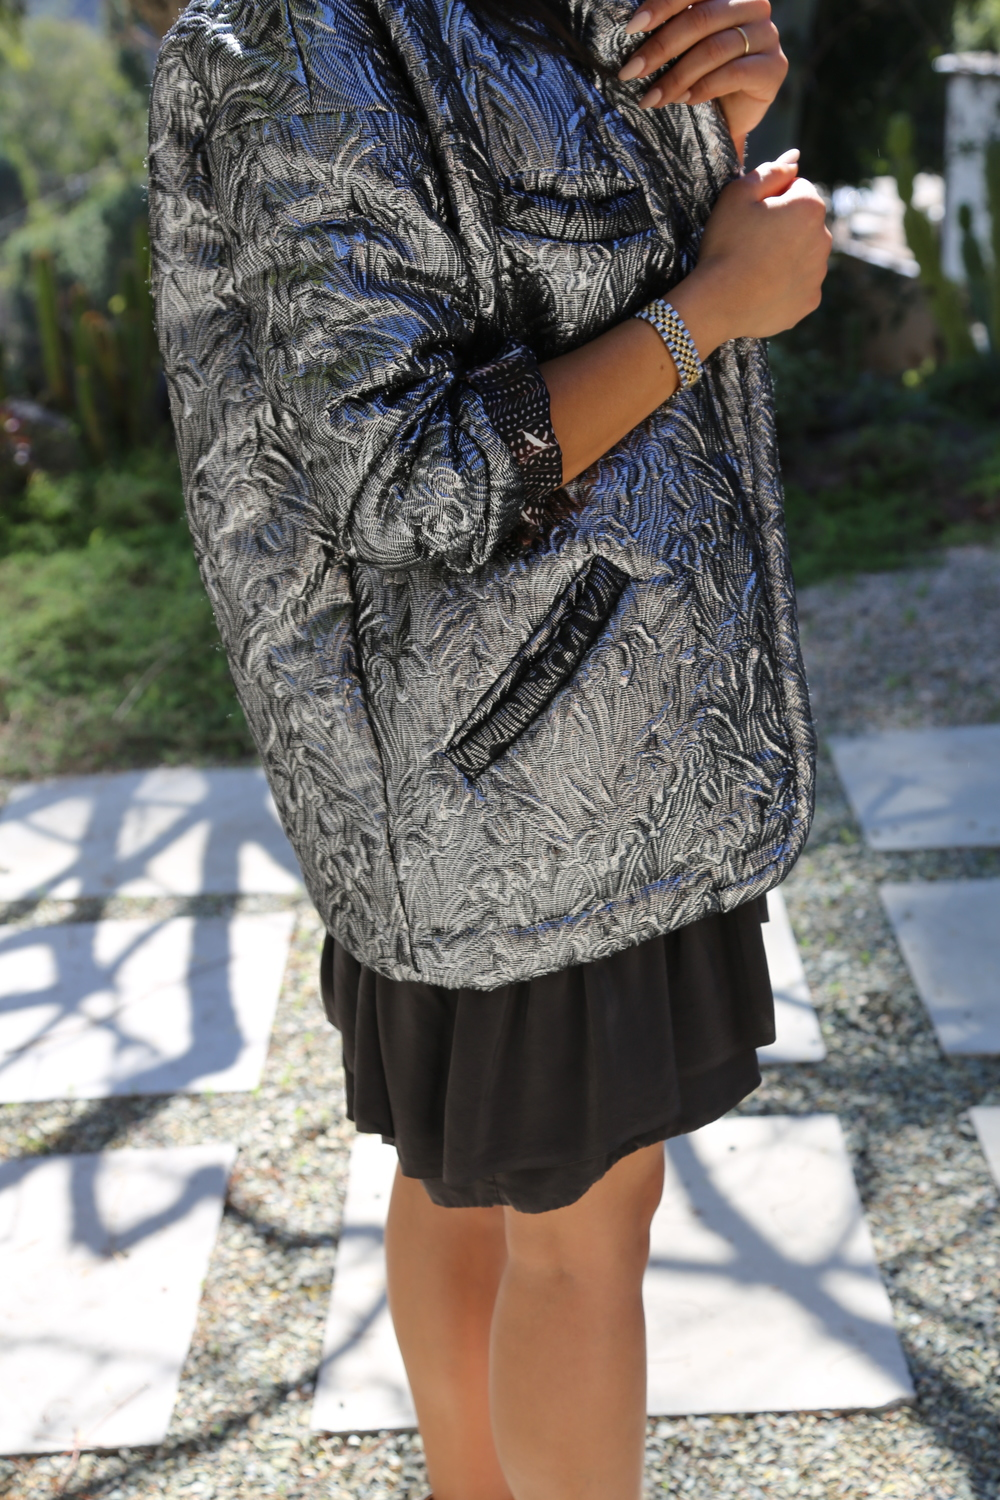 VANESSA-BELETIC-RUFFLES-SILVER-ISABEL-MARANT-COAT-LOS-ANGELES.JPG